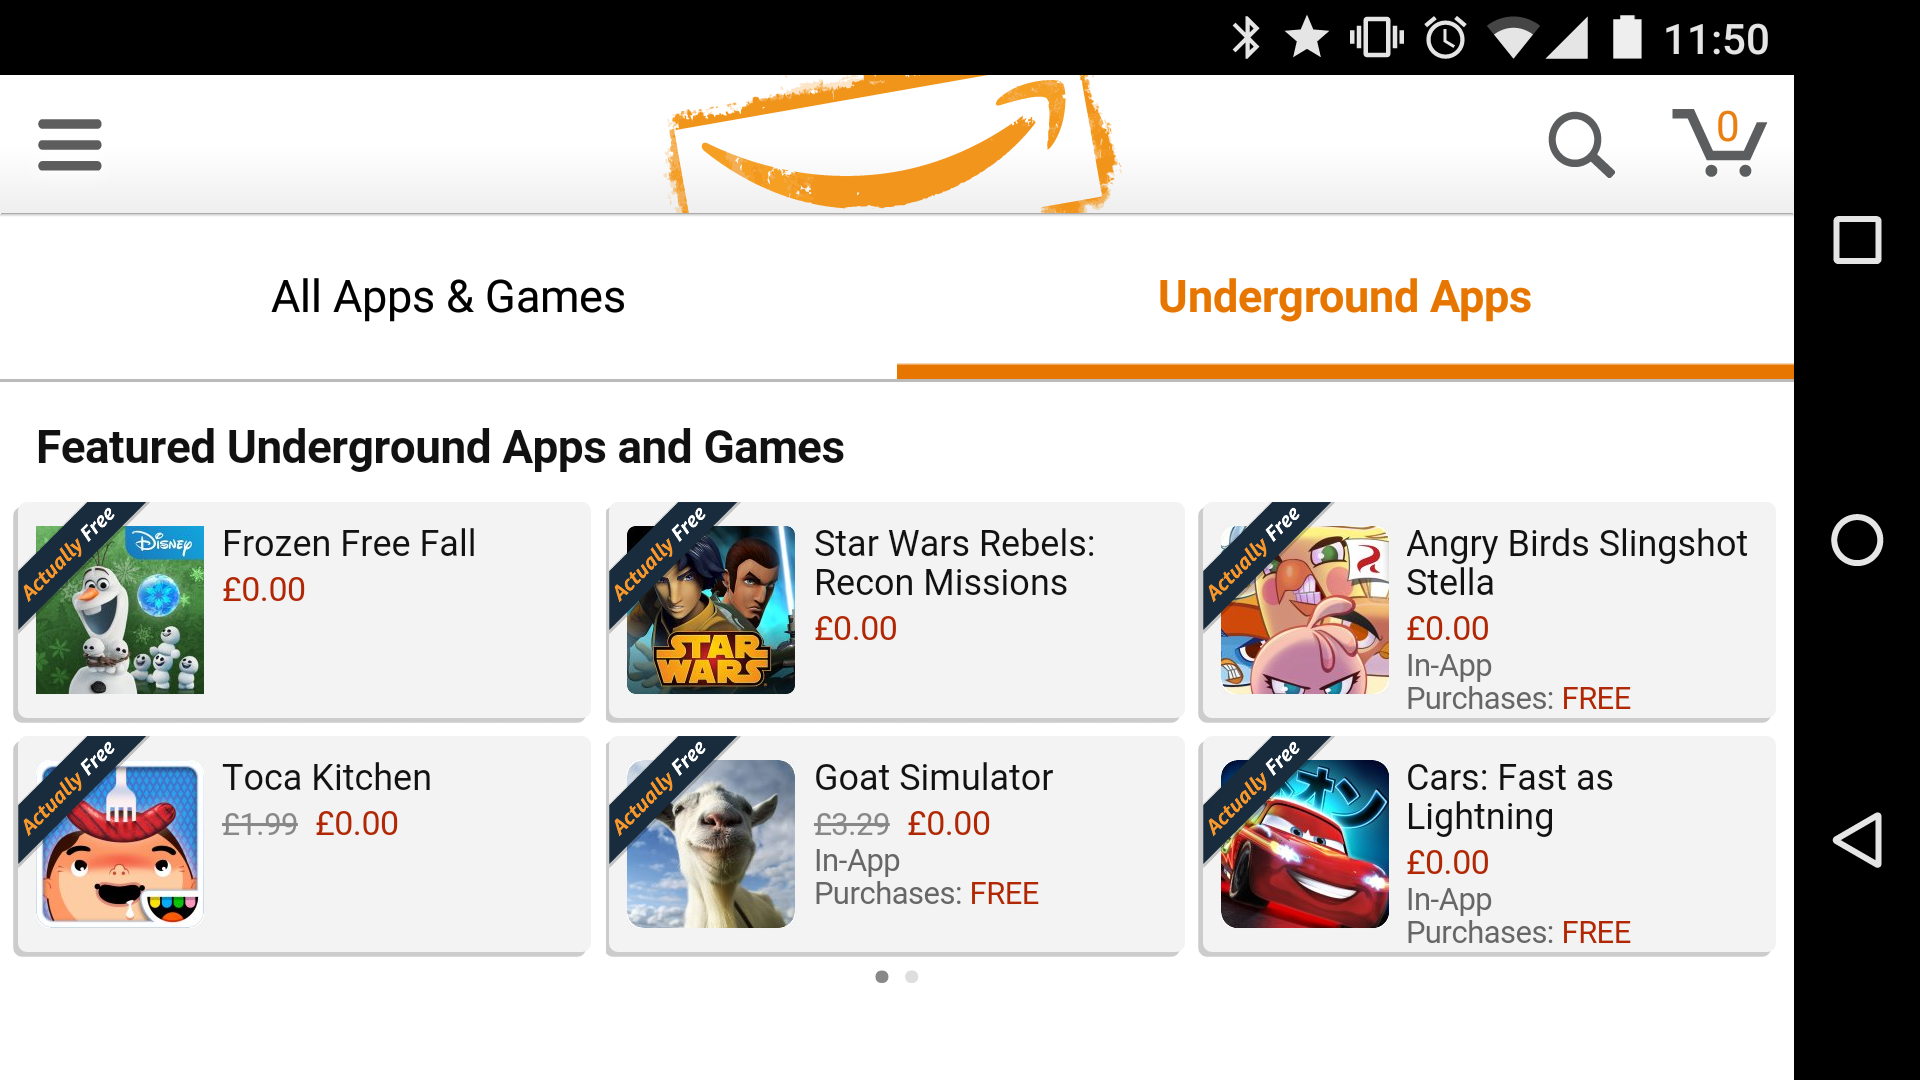 Amazon Underground wants to kill off in-app purchases